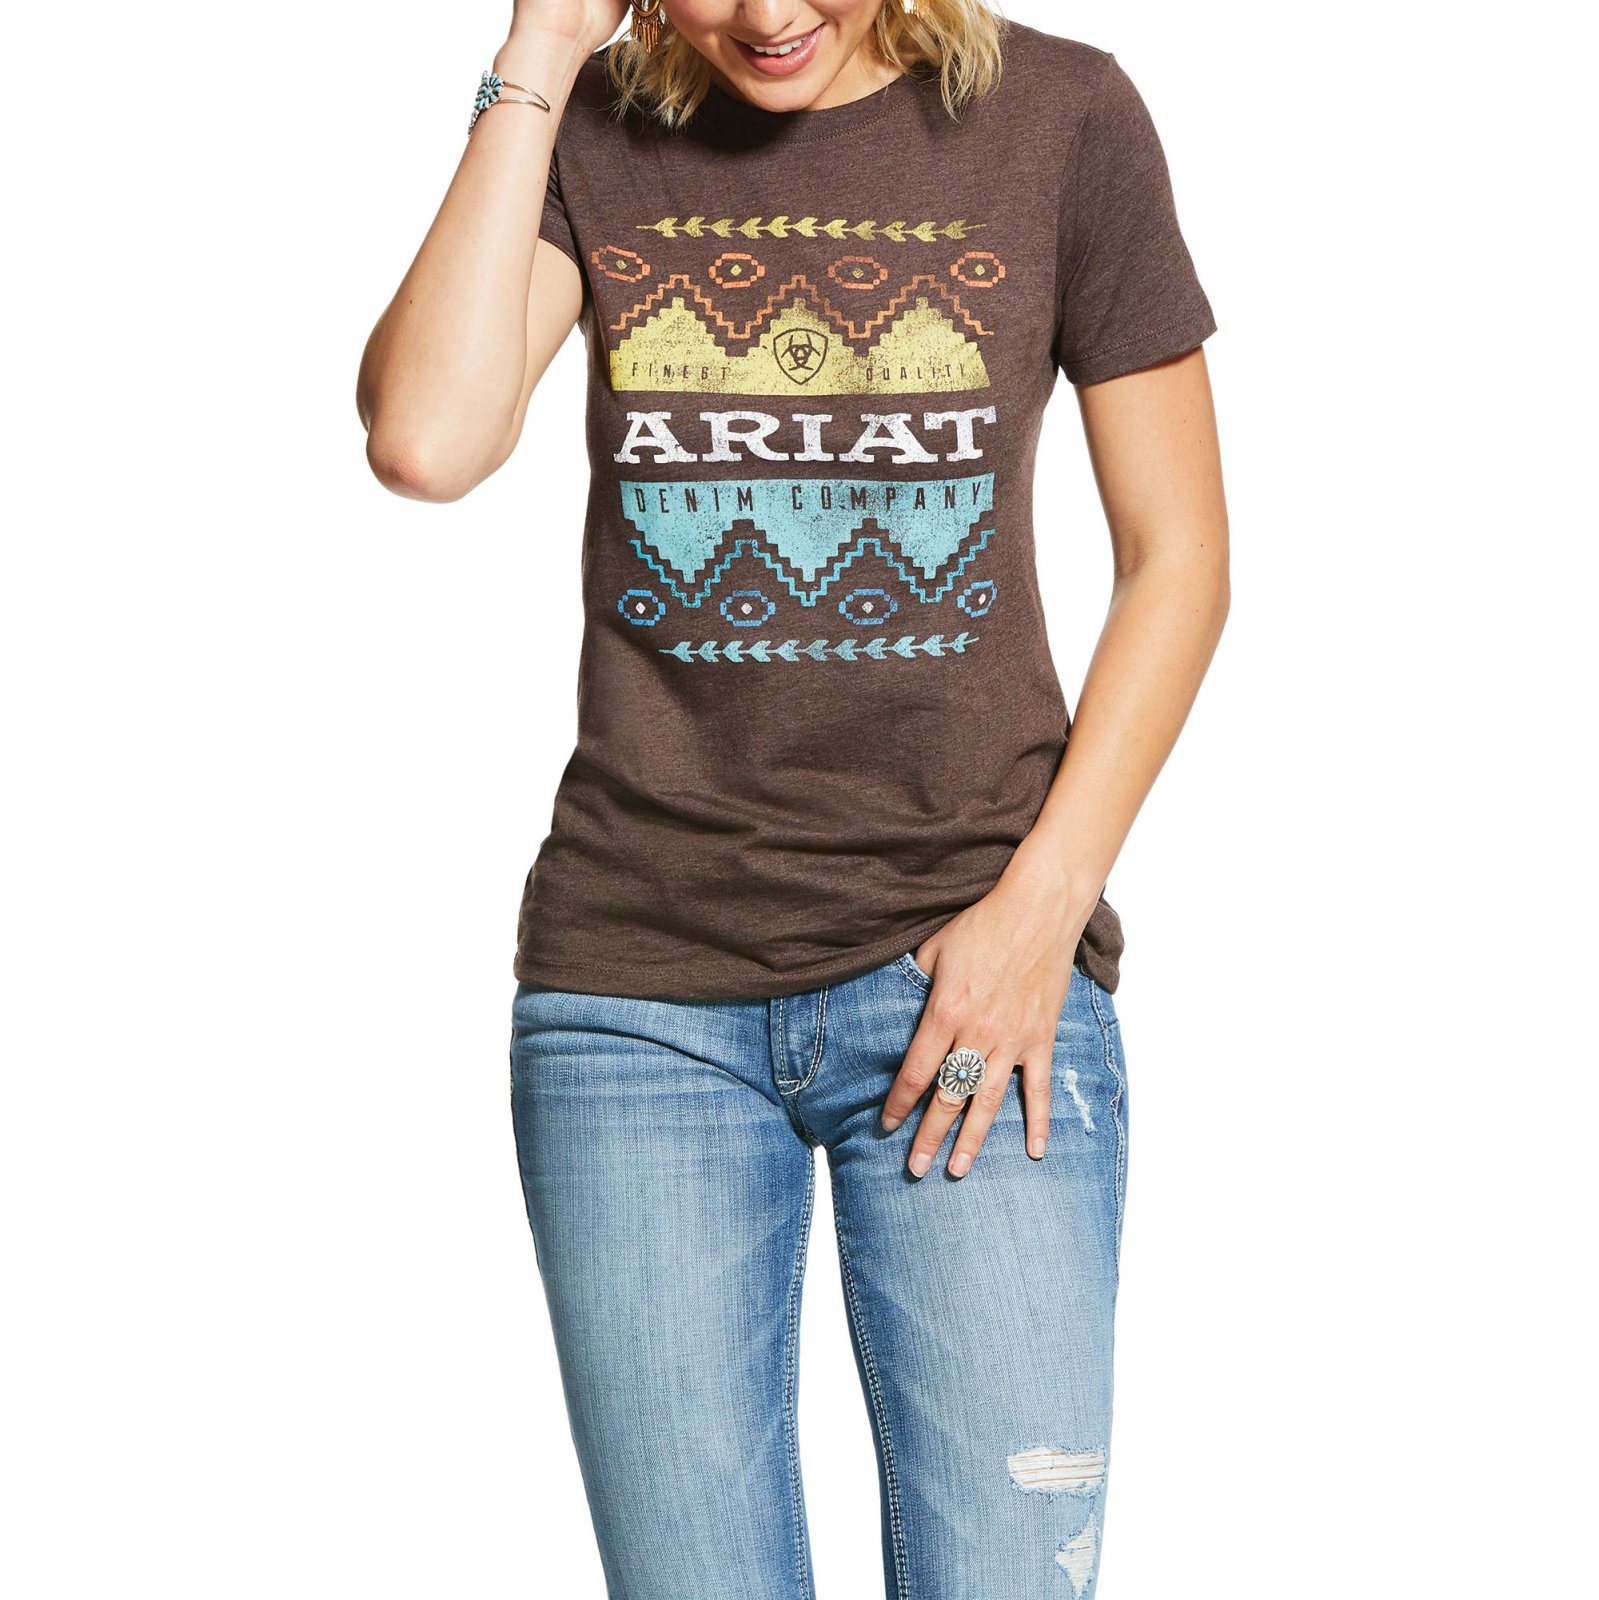 Navajo Tribe Tee from Ariat